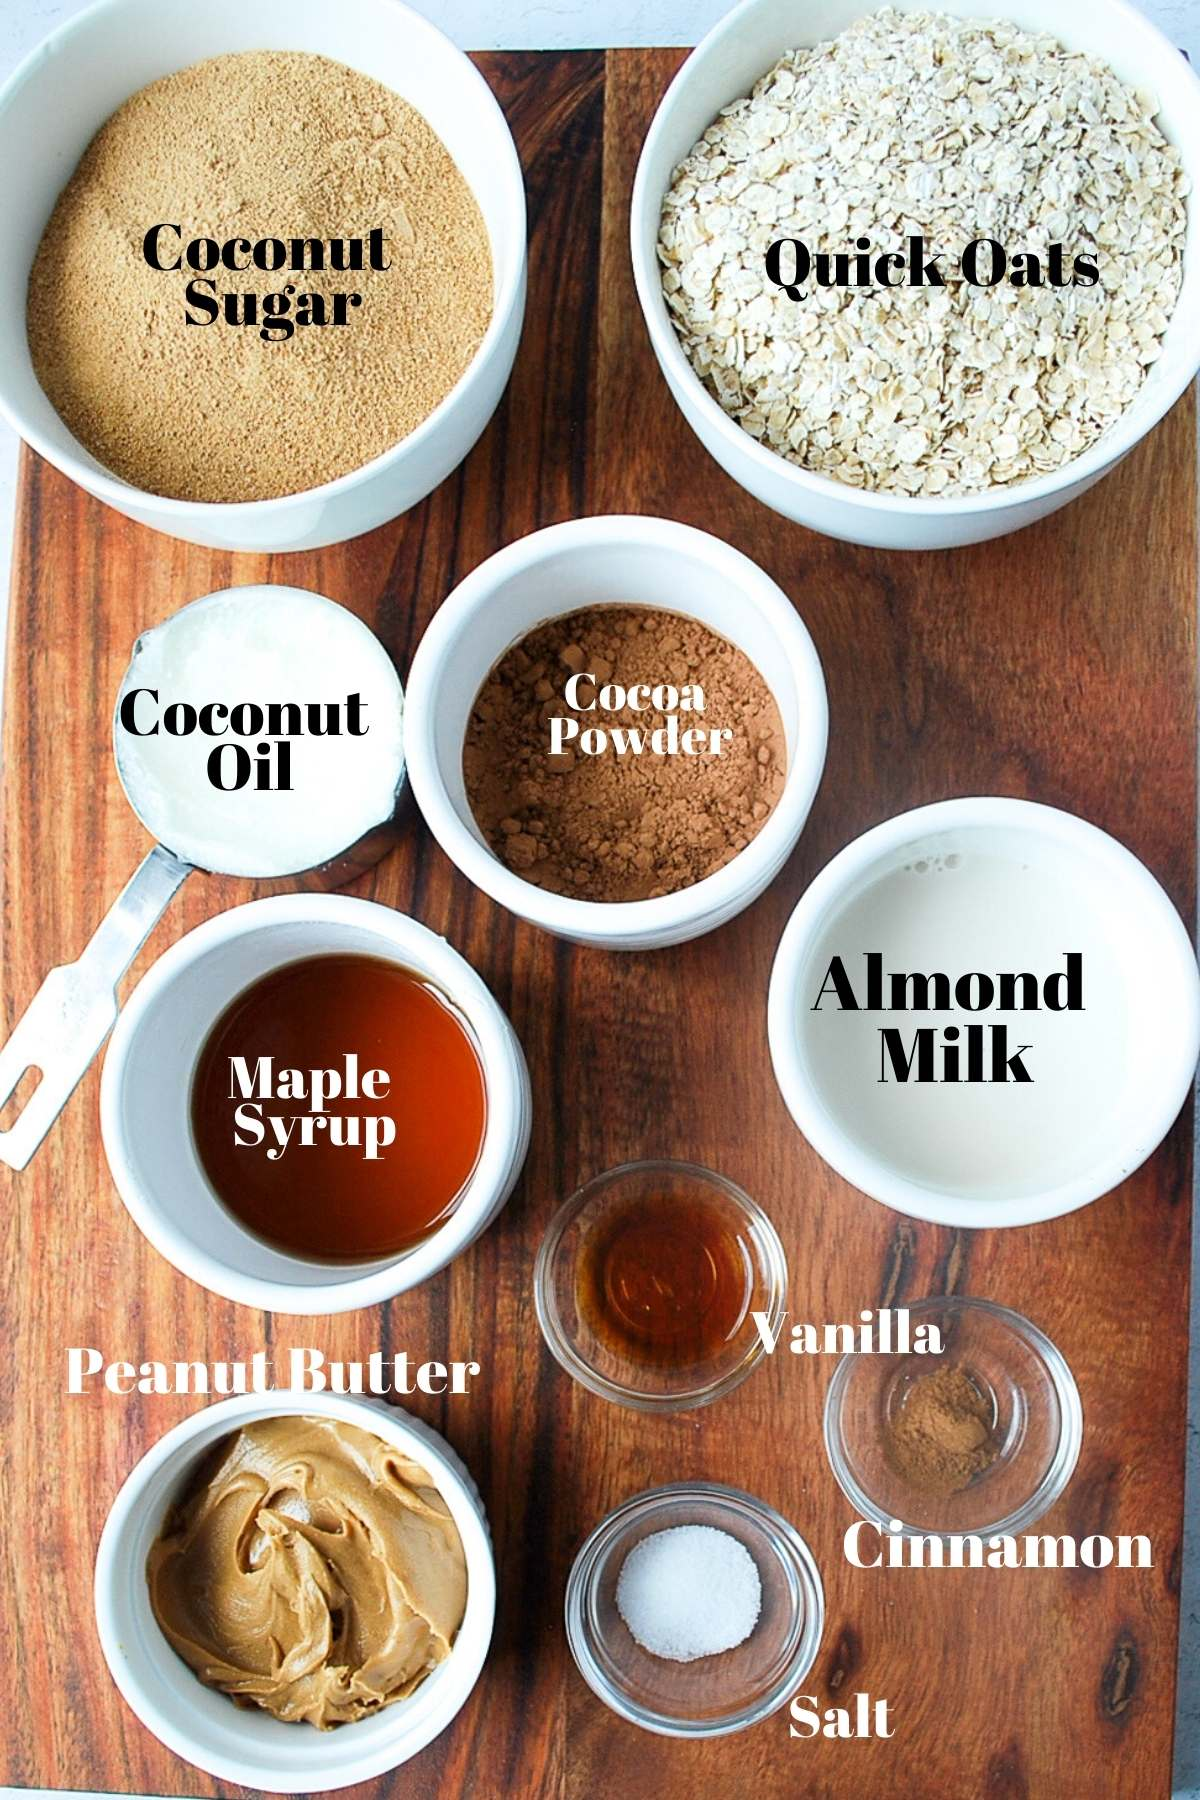 coconut sugar, oats, coconut oil, cocoa powder, almond milk, maple syrup, peanut butter, vanilla, salt and cinnamon on display for no-bake cookies